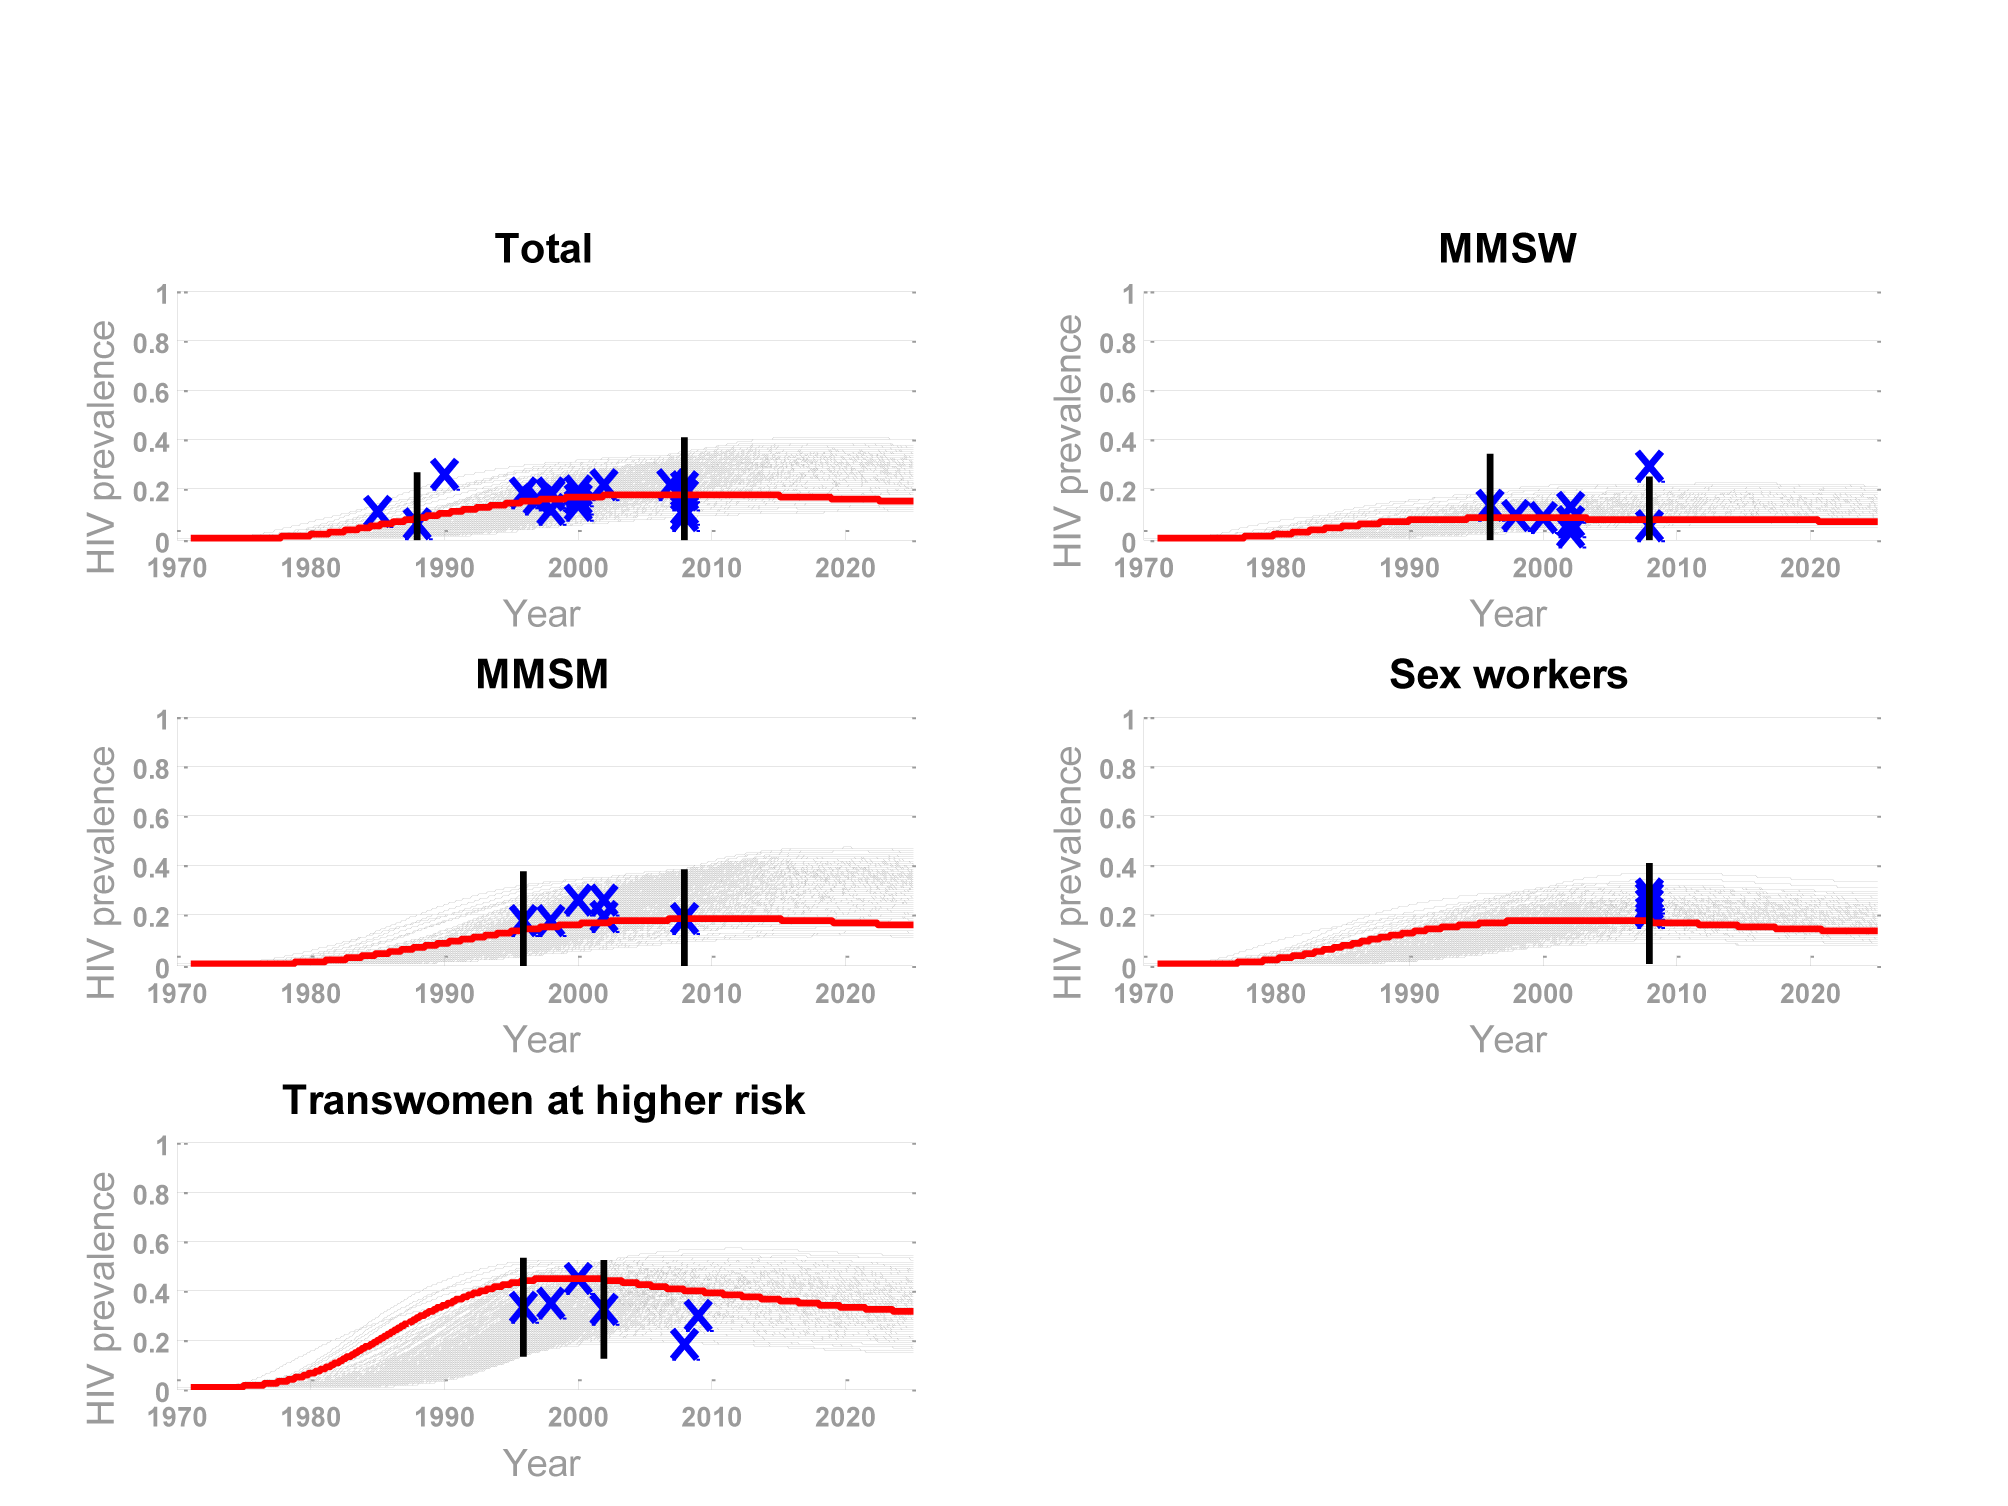 Selected model runs and best fit based on prevalence data for four subgroups and the overall population.